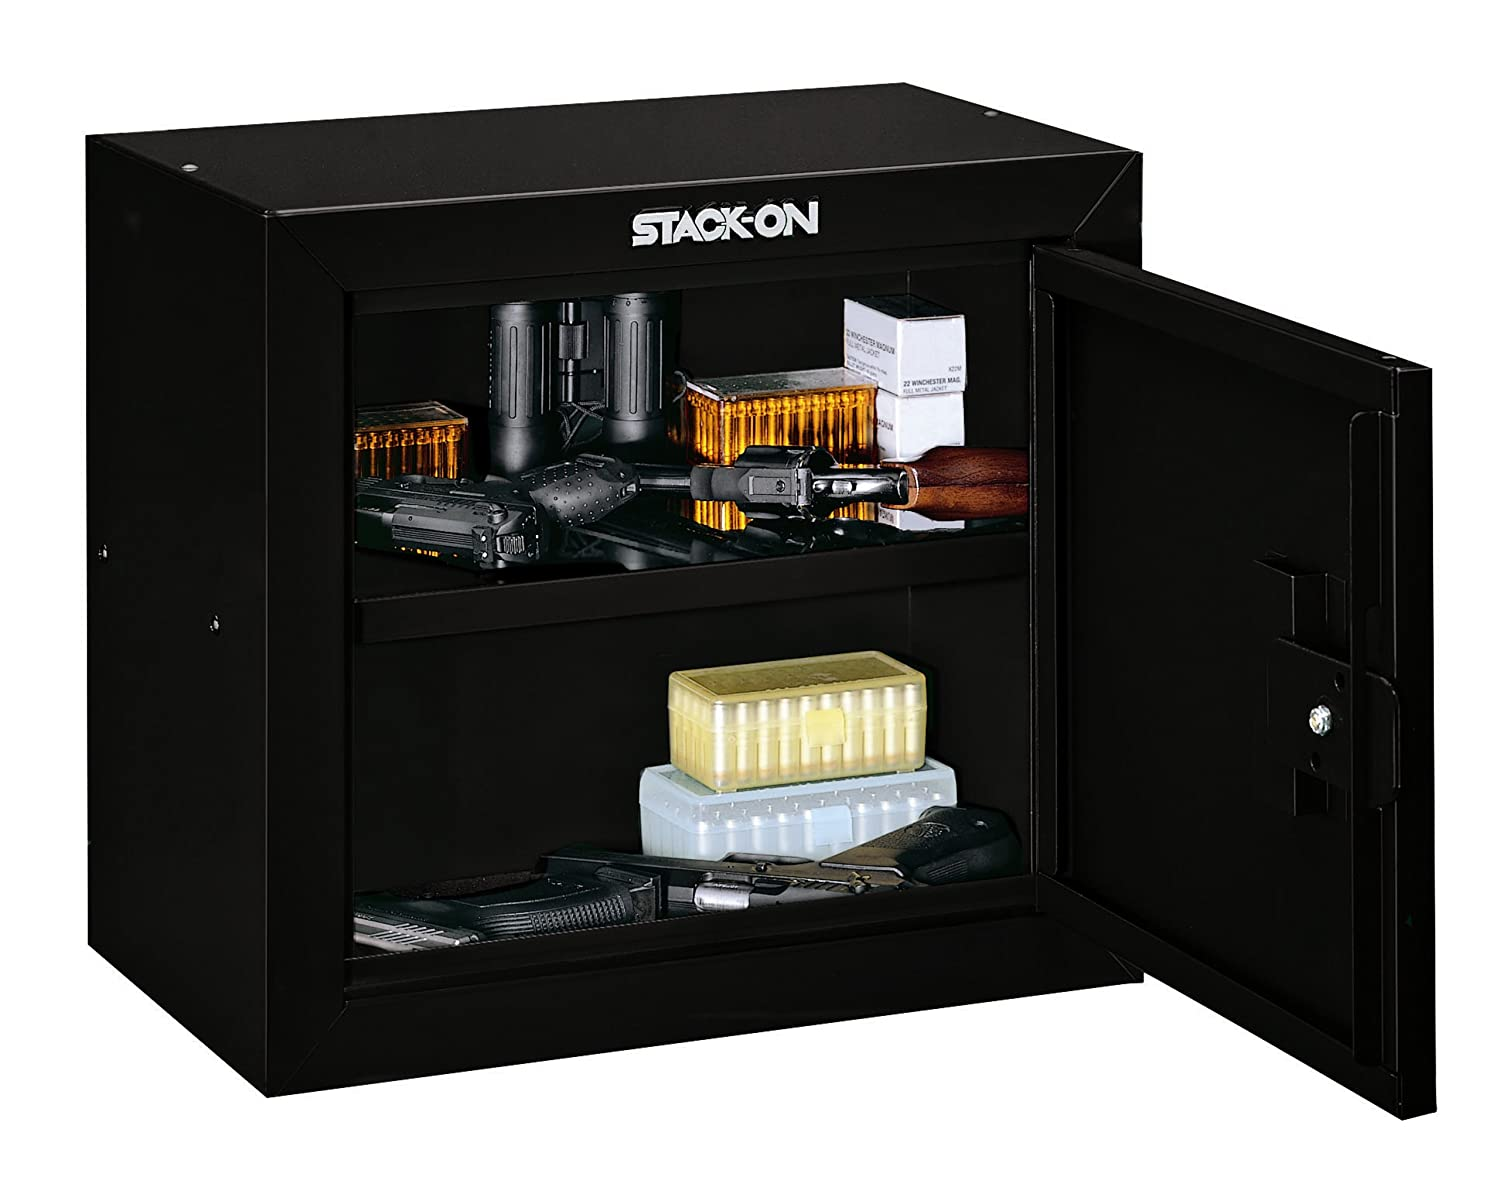 Amazon.com: Stack-On GCB-500 Steel Pistol/Ammo Cabinet, Black ...